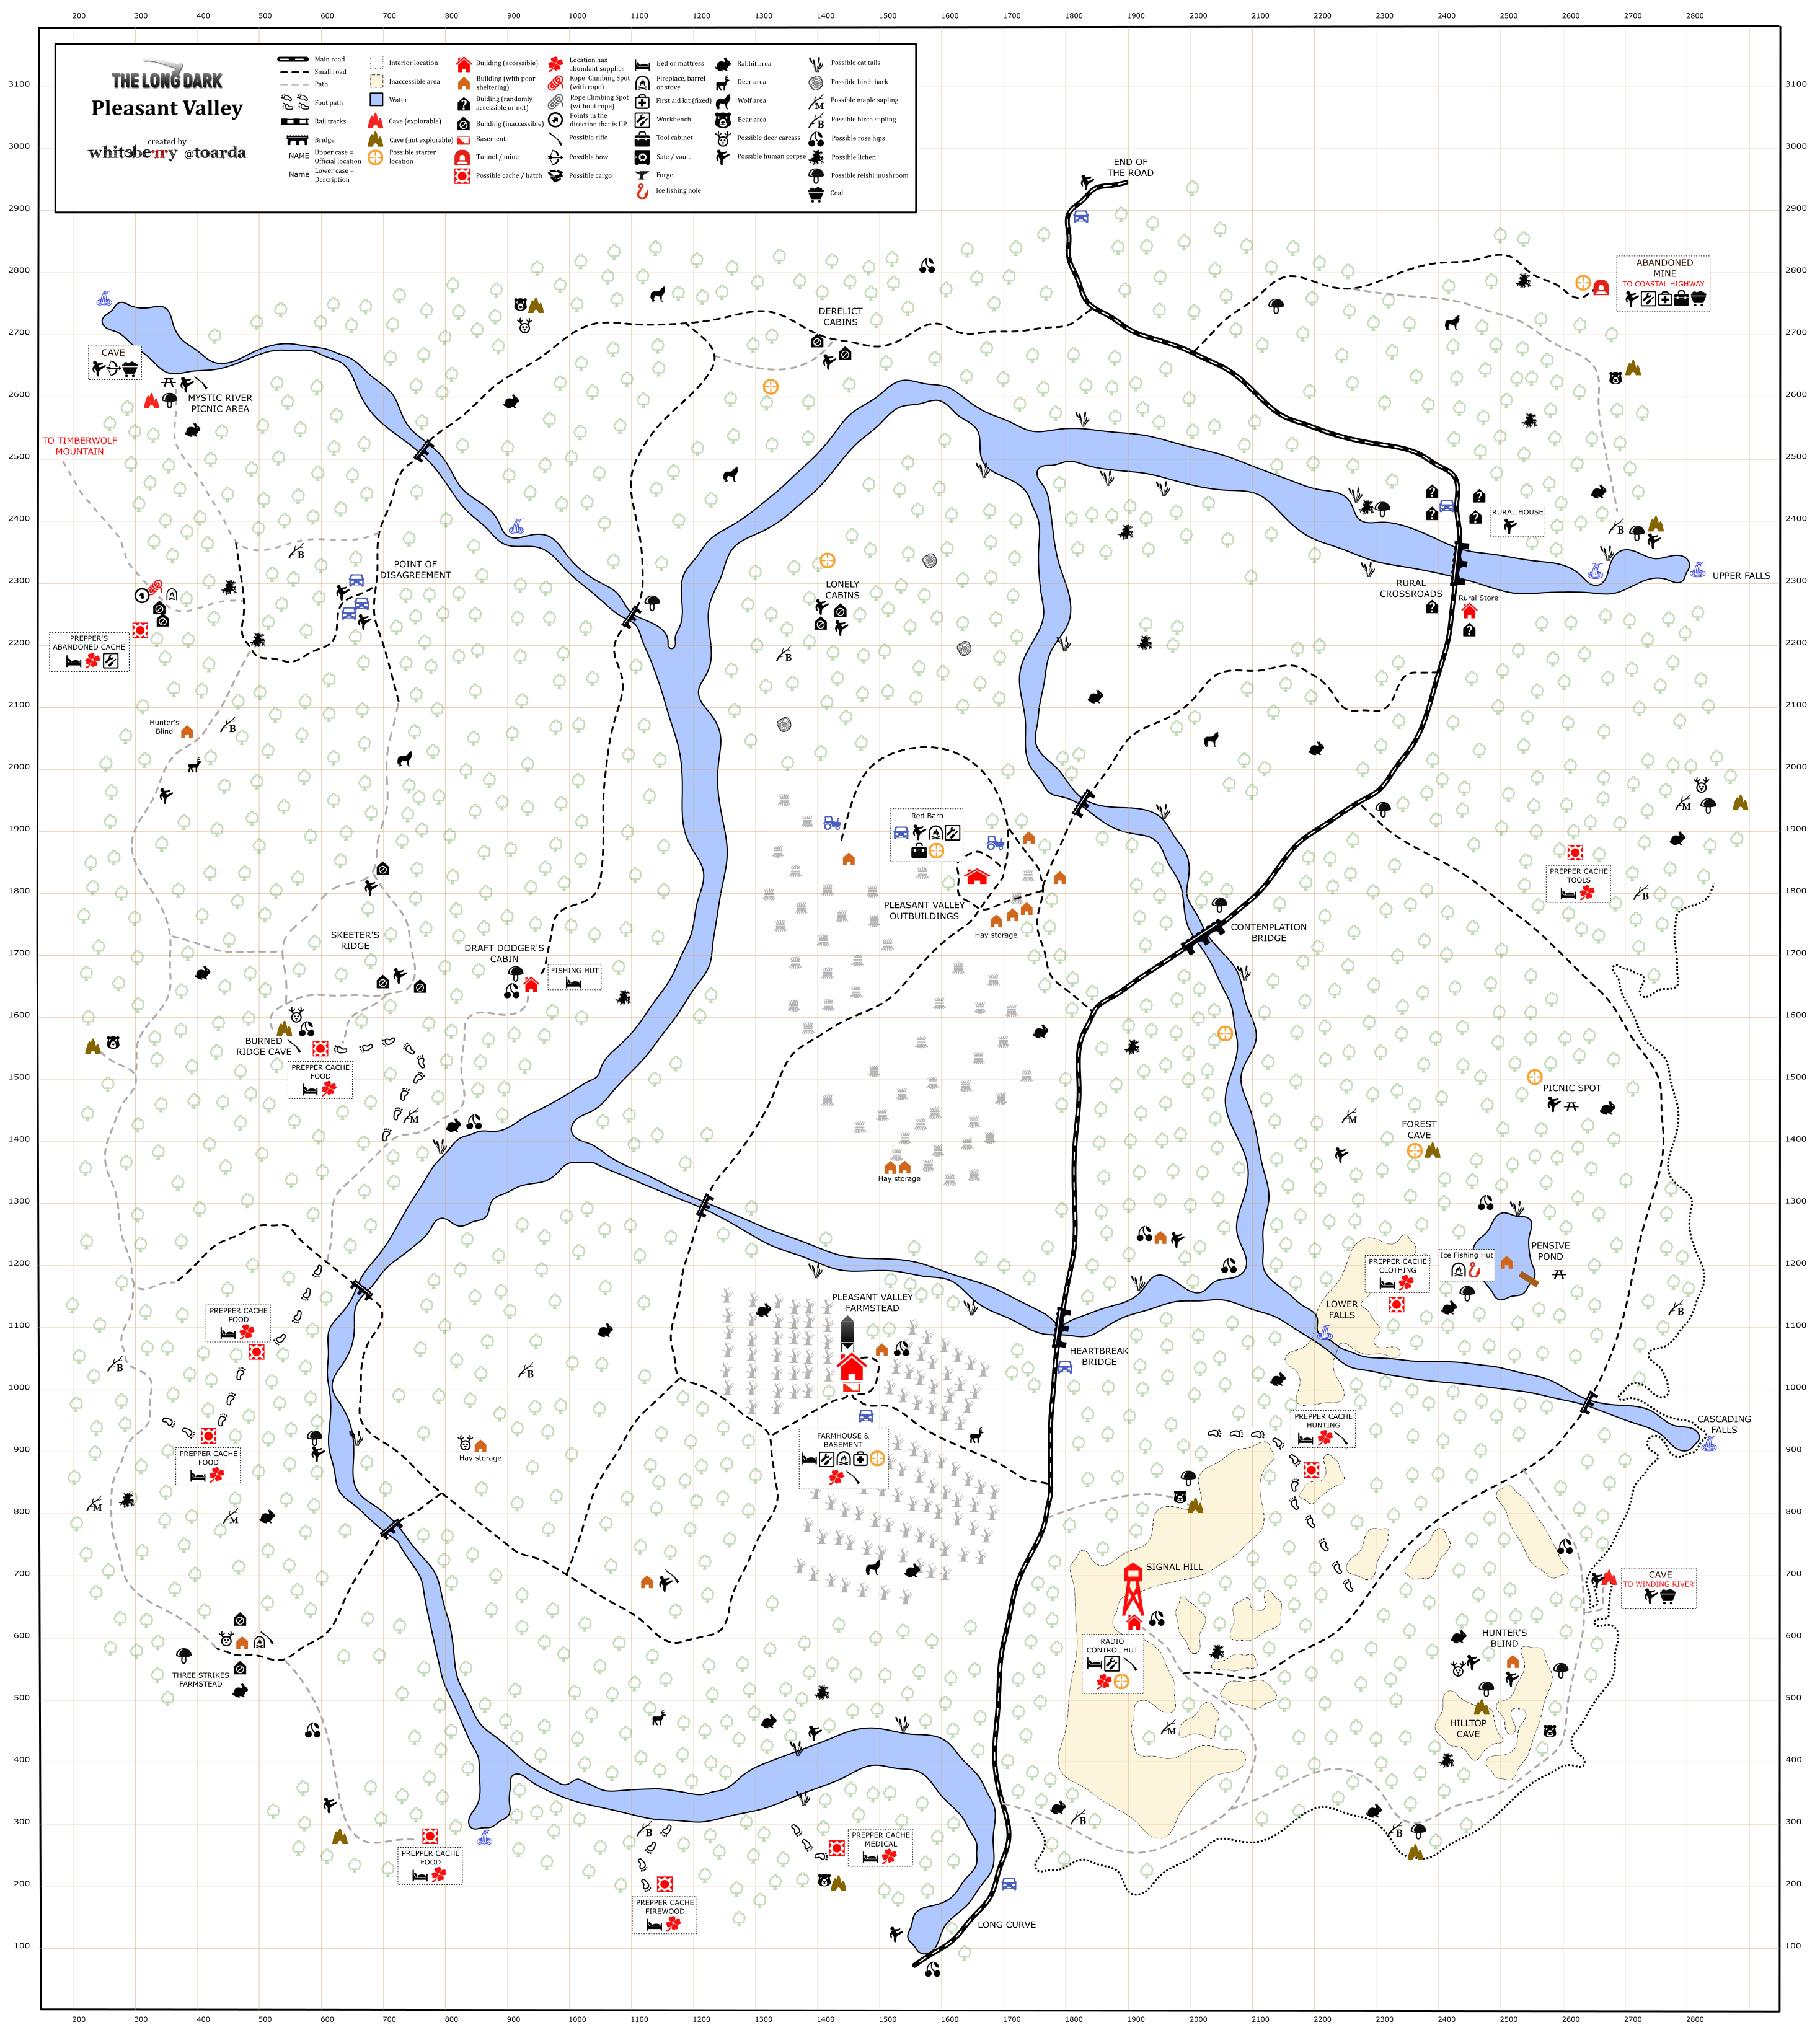 Image Pleasant Valley map by whiteberry toarda